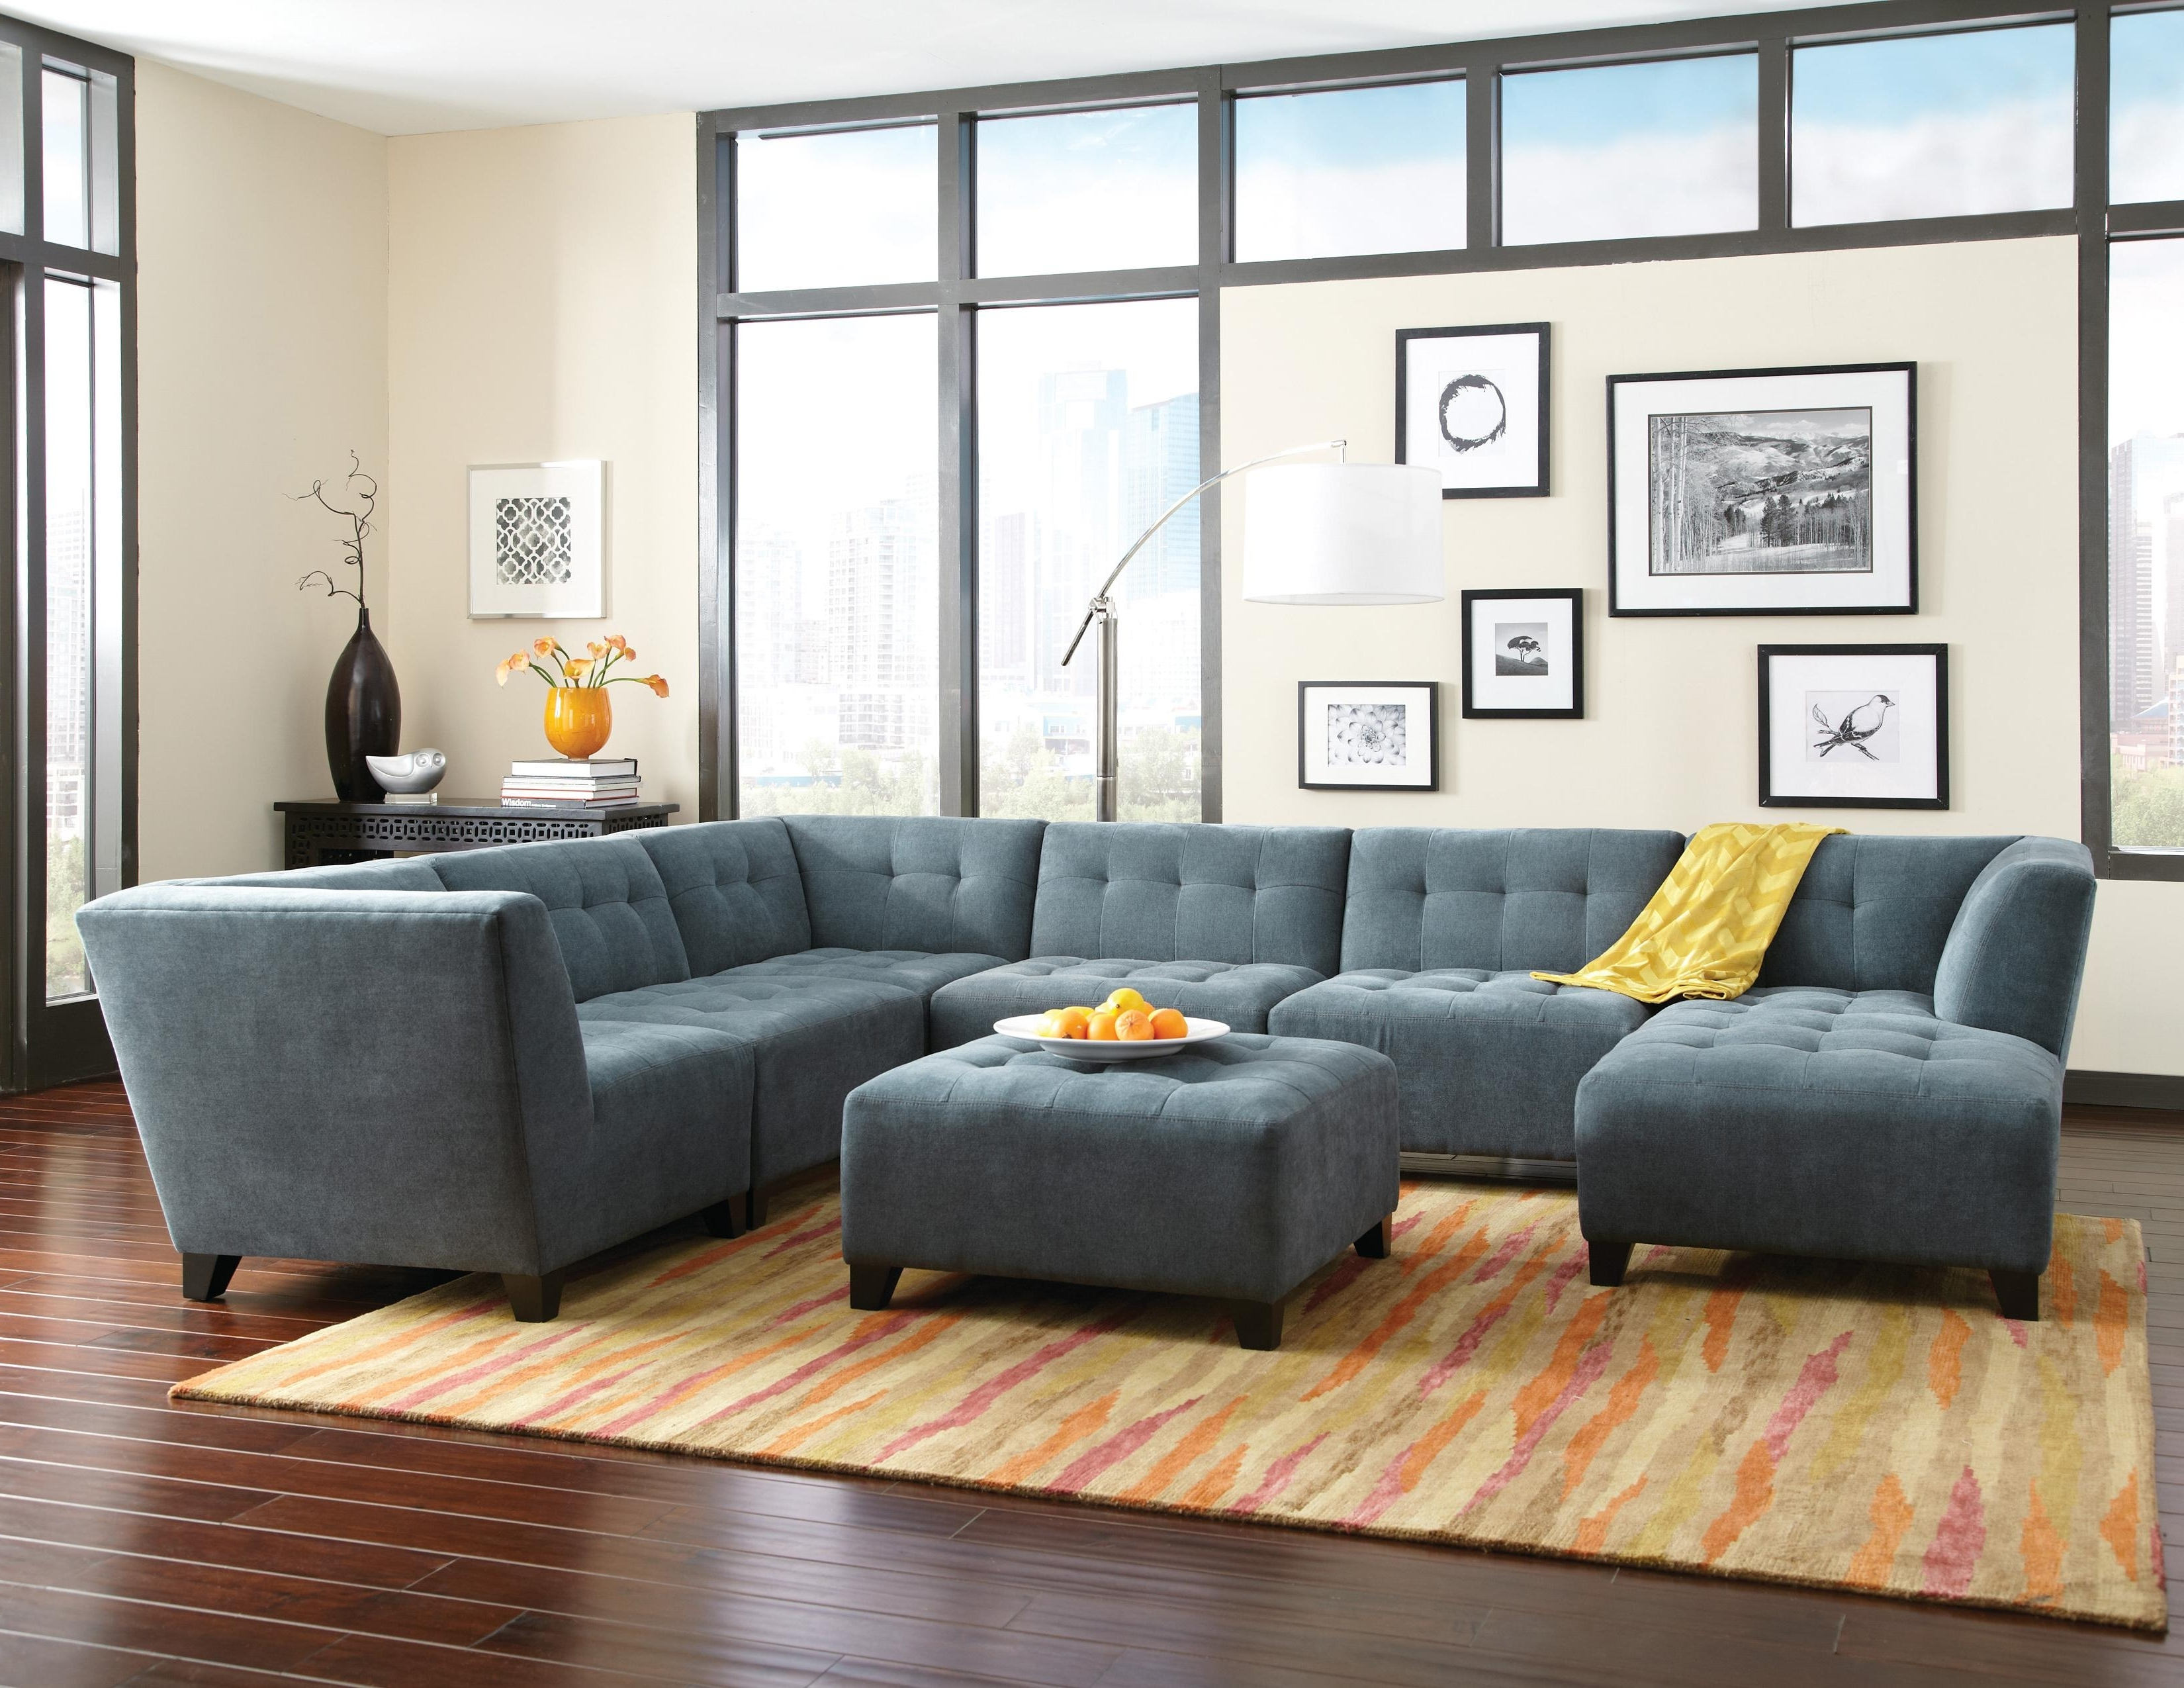 Louis Sectional Sofa – Home Design Ideas And Pictures Throughout Most Popular Homemakers Sectional Sofas (View 12 of 20)